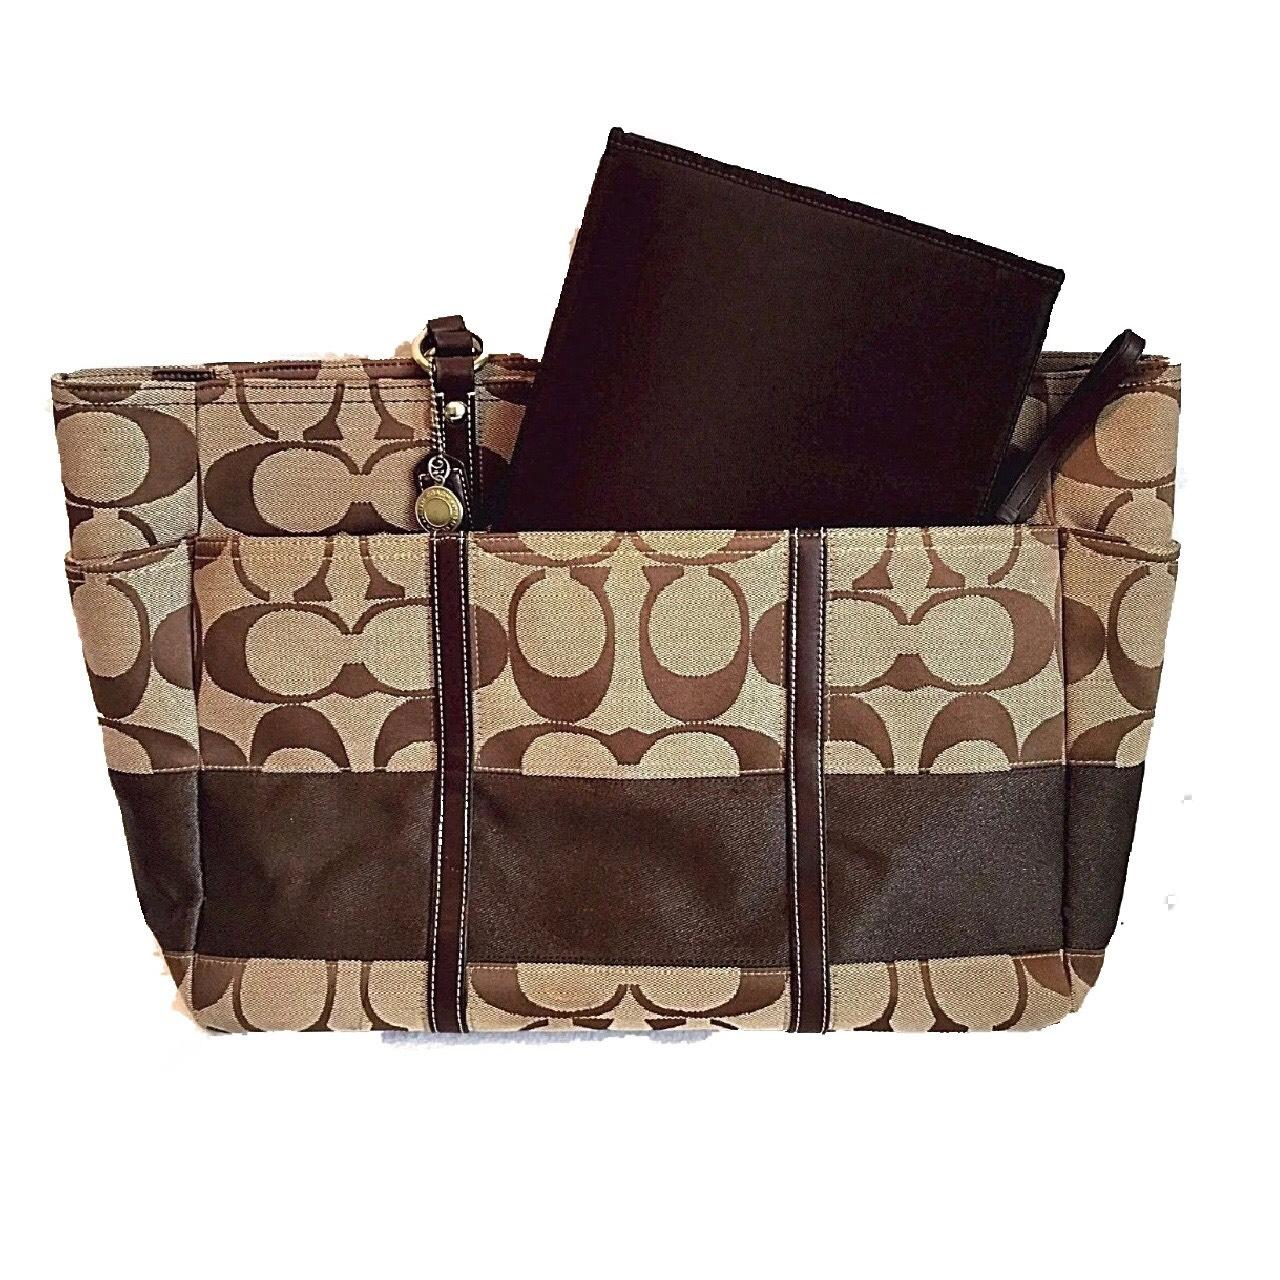 9473cd8116ee4 coupon code for coach baby bag in crossgrain leather furniture 67750 ...